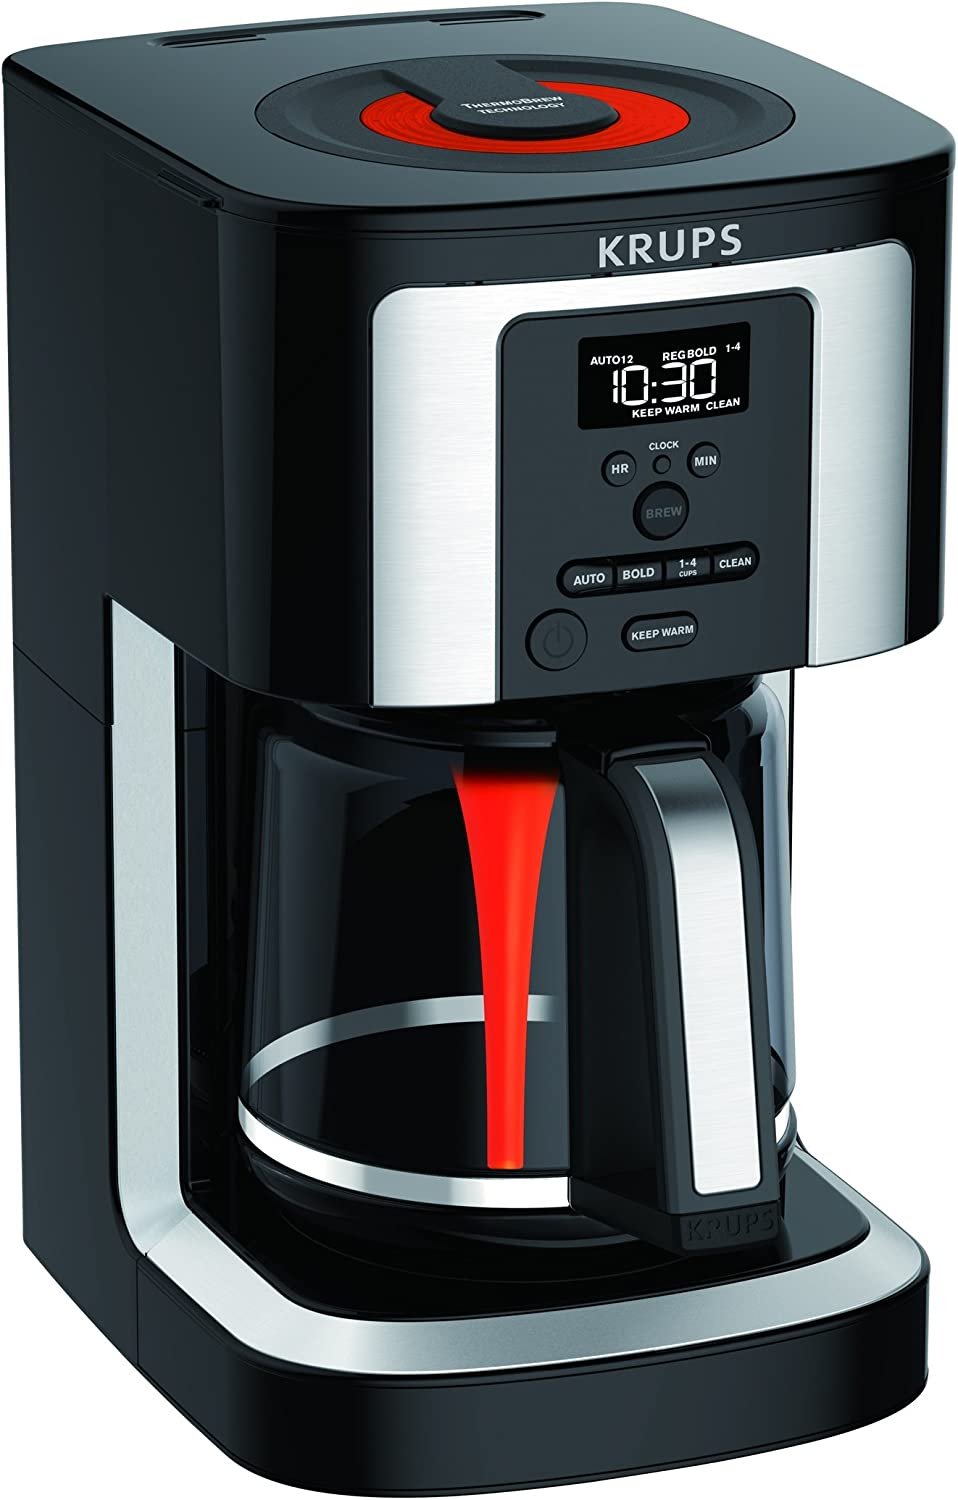 10. KRUPS EC 322, best up-to-date least expensive coffee maker